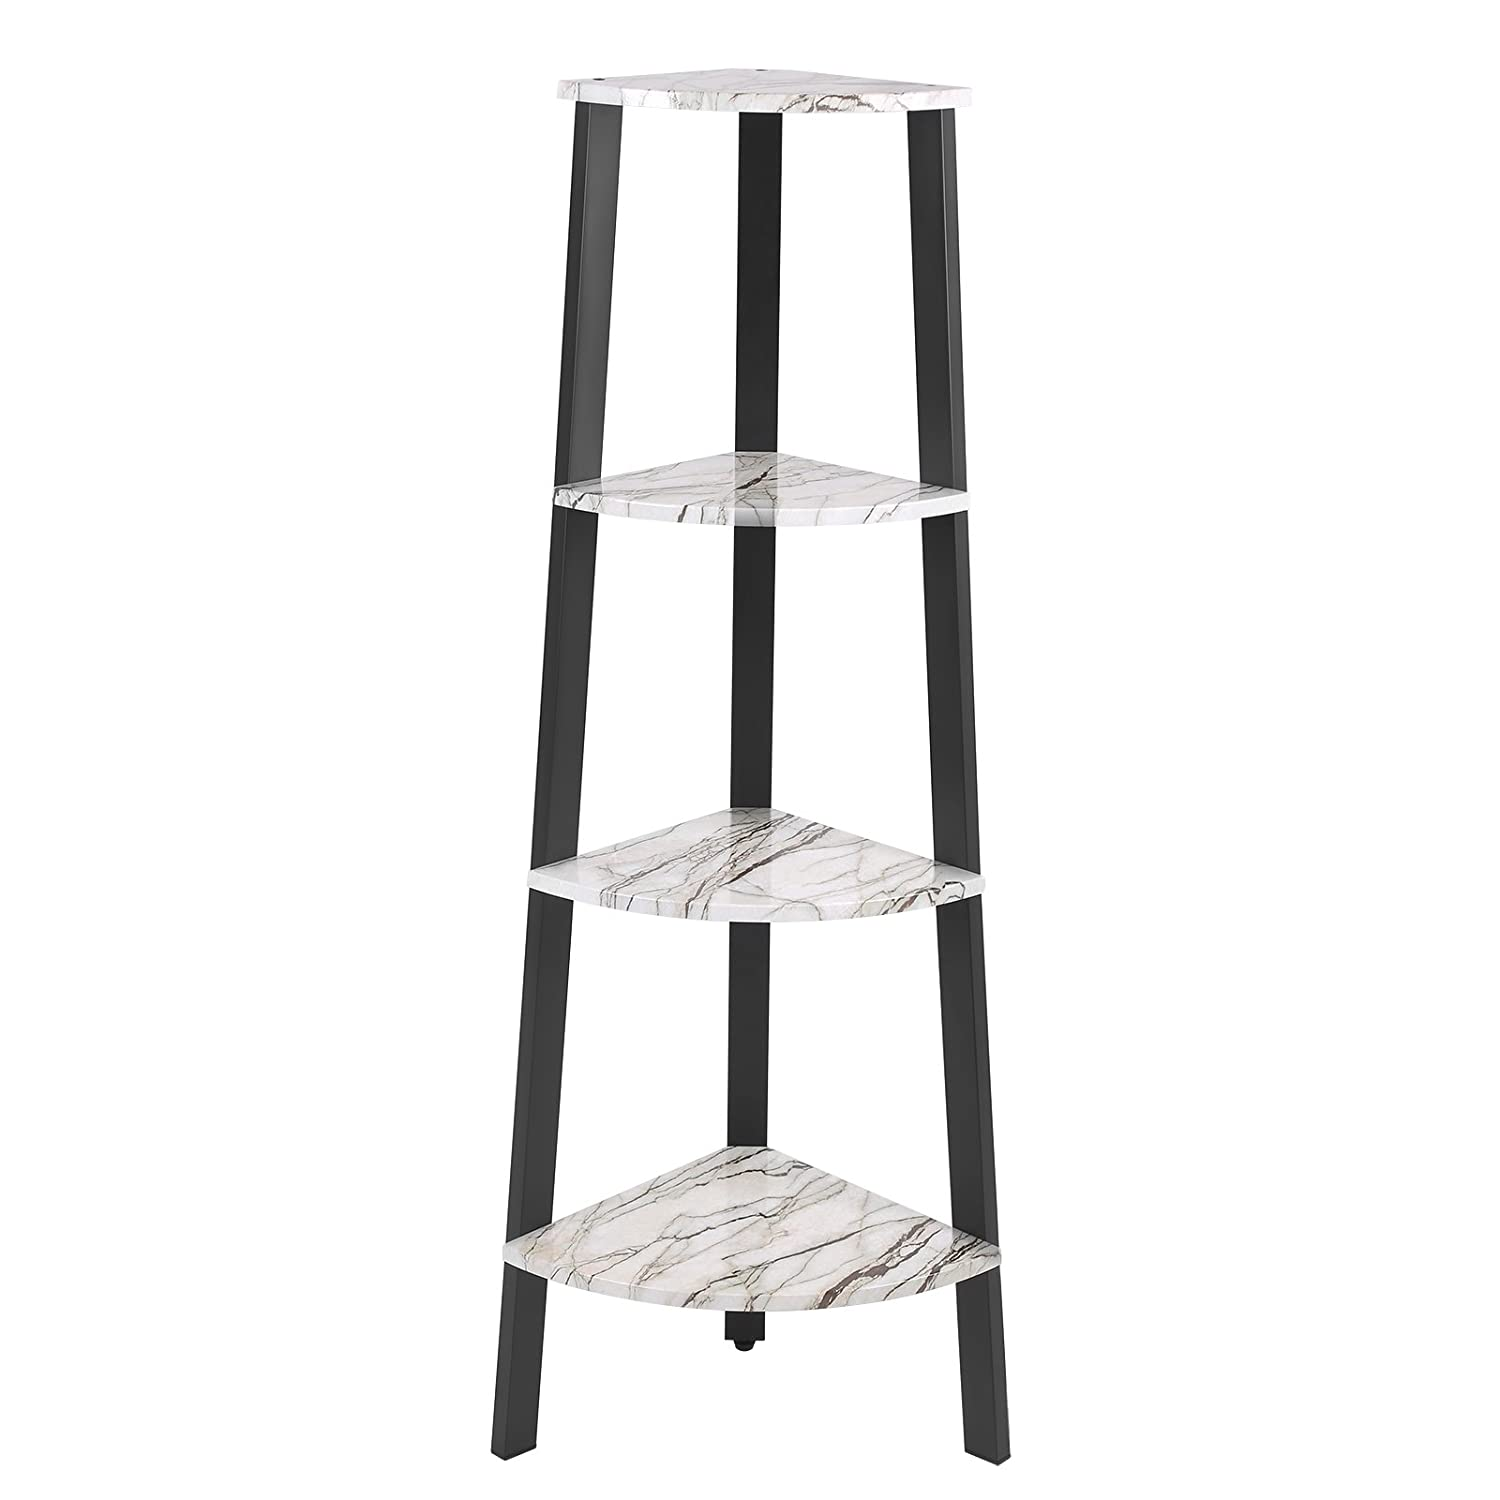 SONGMICS Corner Shelf, 4-Tier Display Shelf Bookshelf, Plant Stand for Home and Office, Faux Marble with Metal Frame ULLS34BW